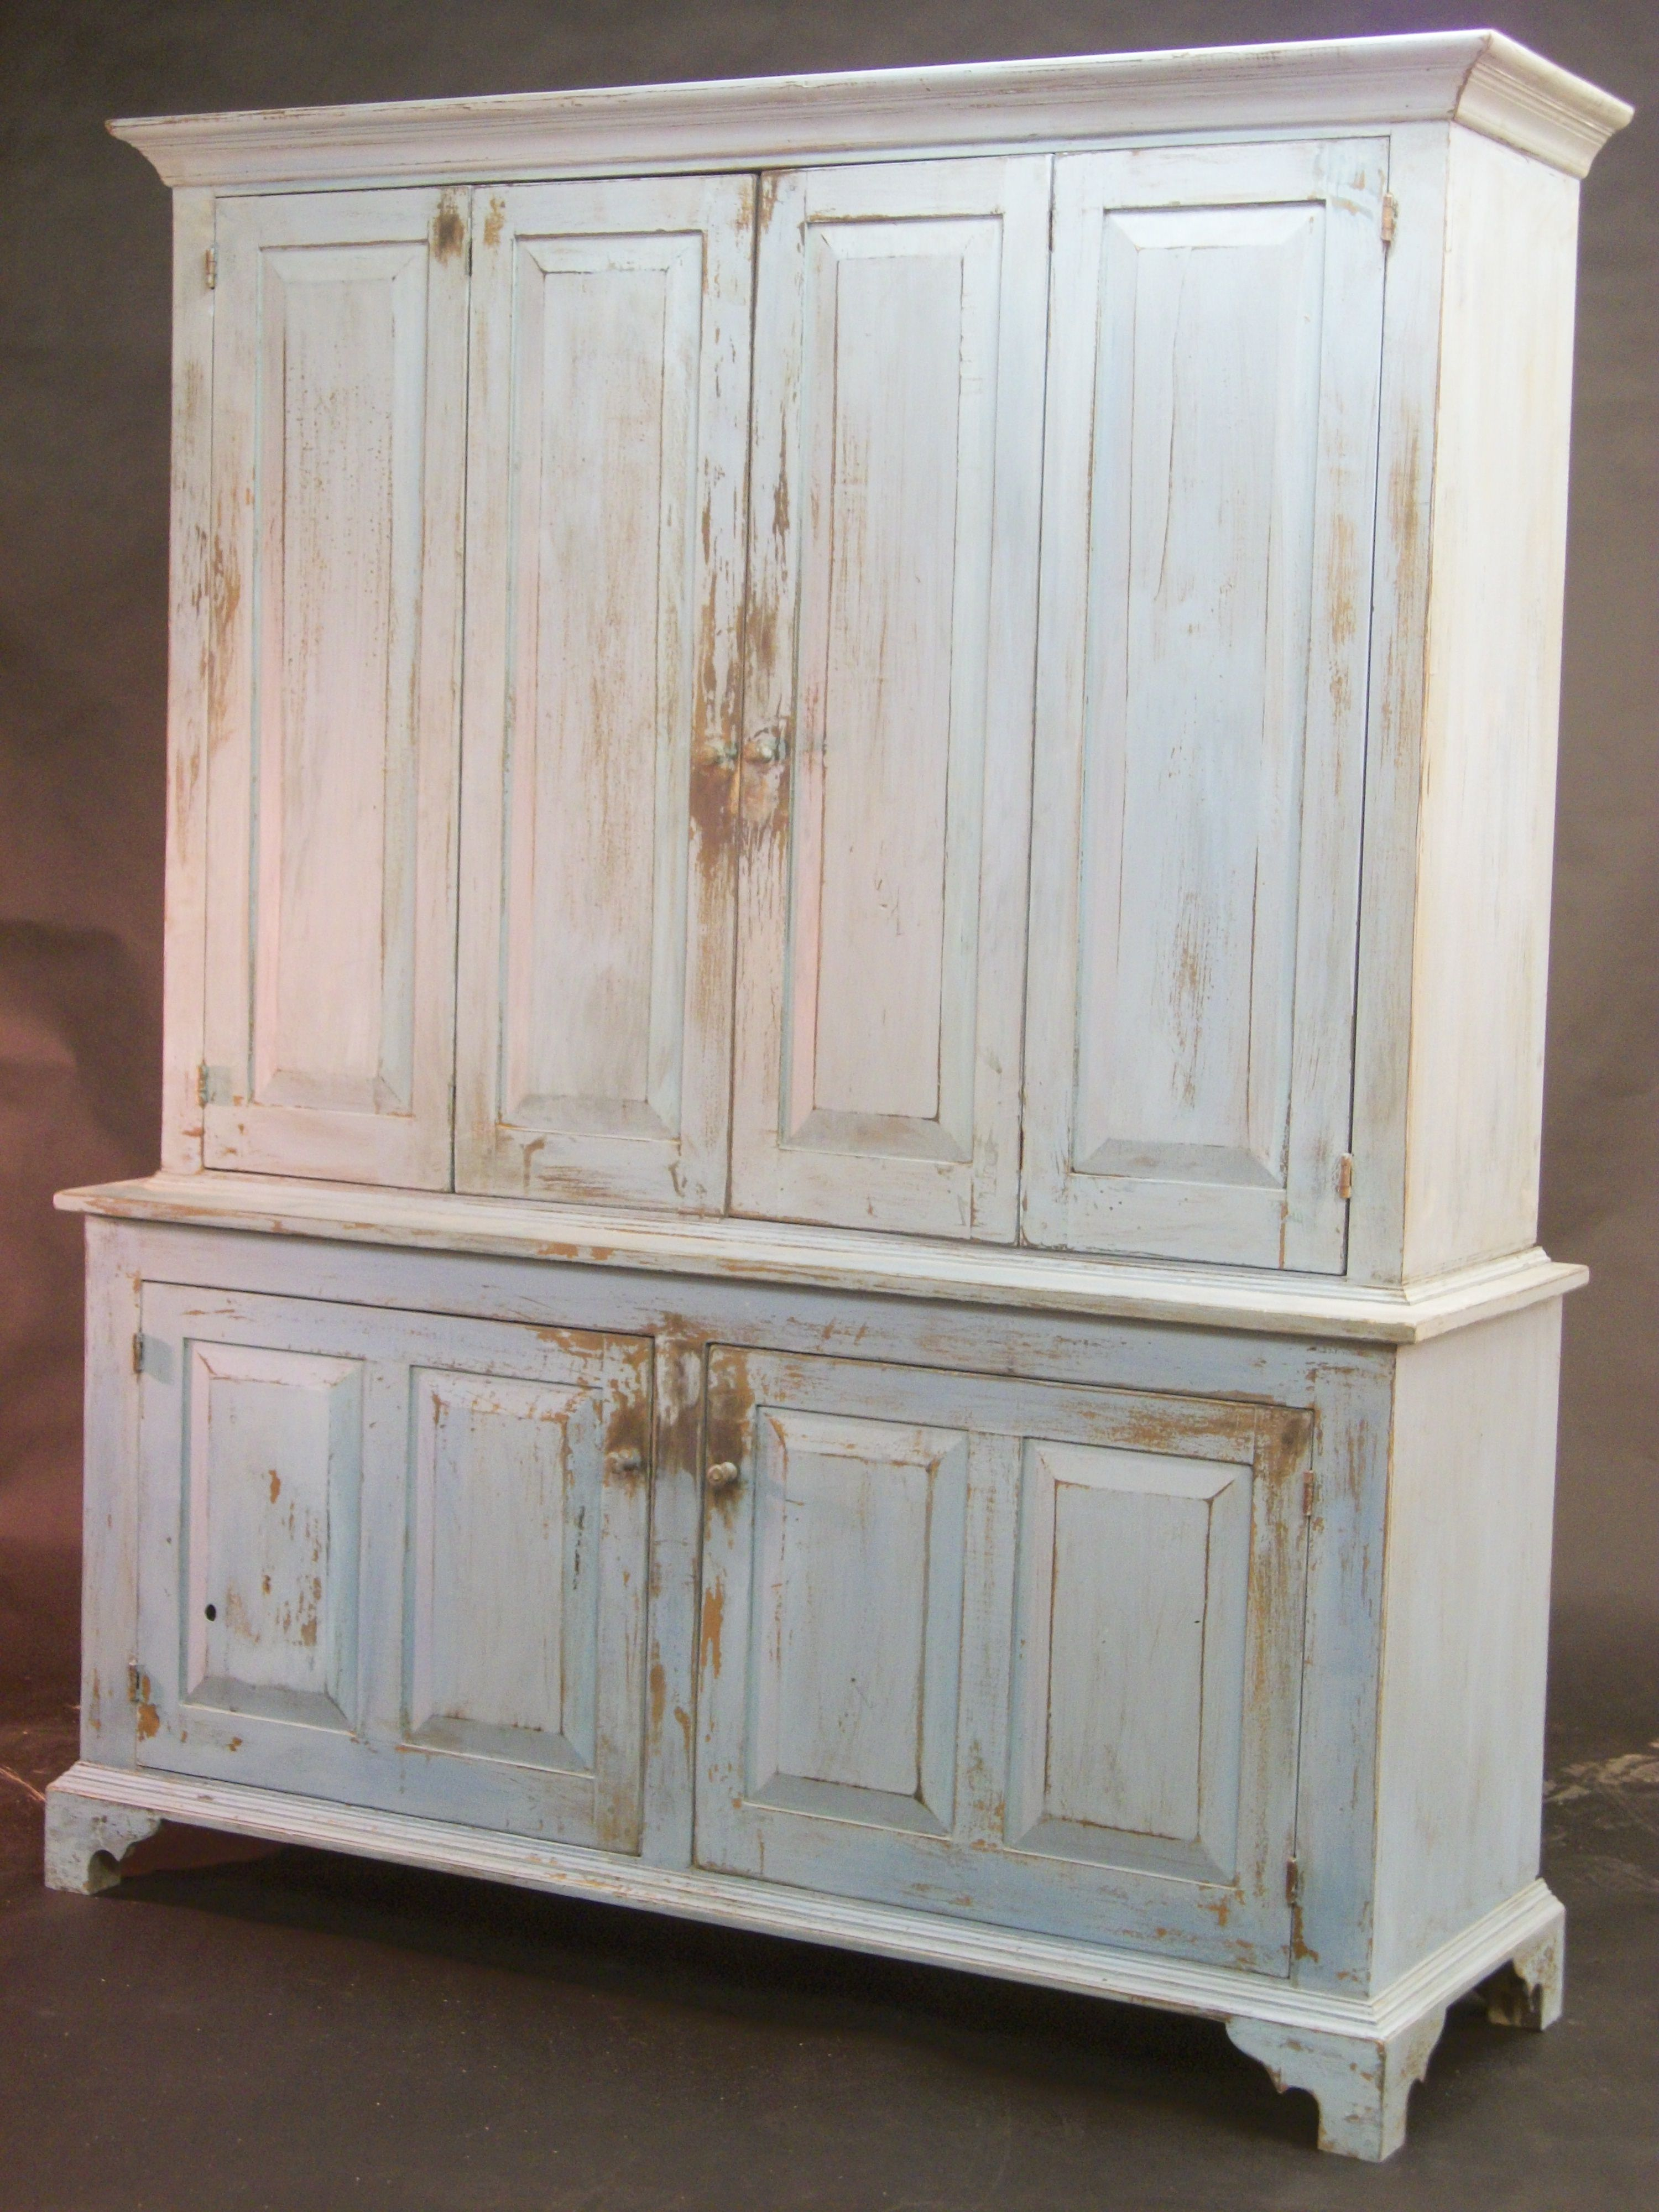 This Cabinet I Made To House A 55 Flat Screen T V Made To Look 200 Years Old Tv Cabinets Tv Cabinets With Doors Tv Cupboard